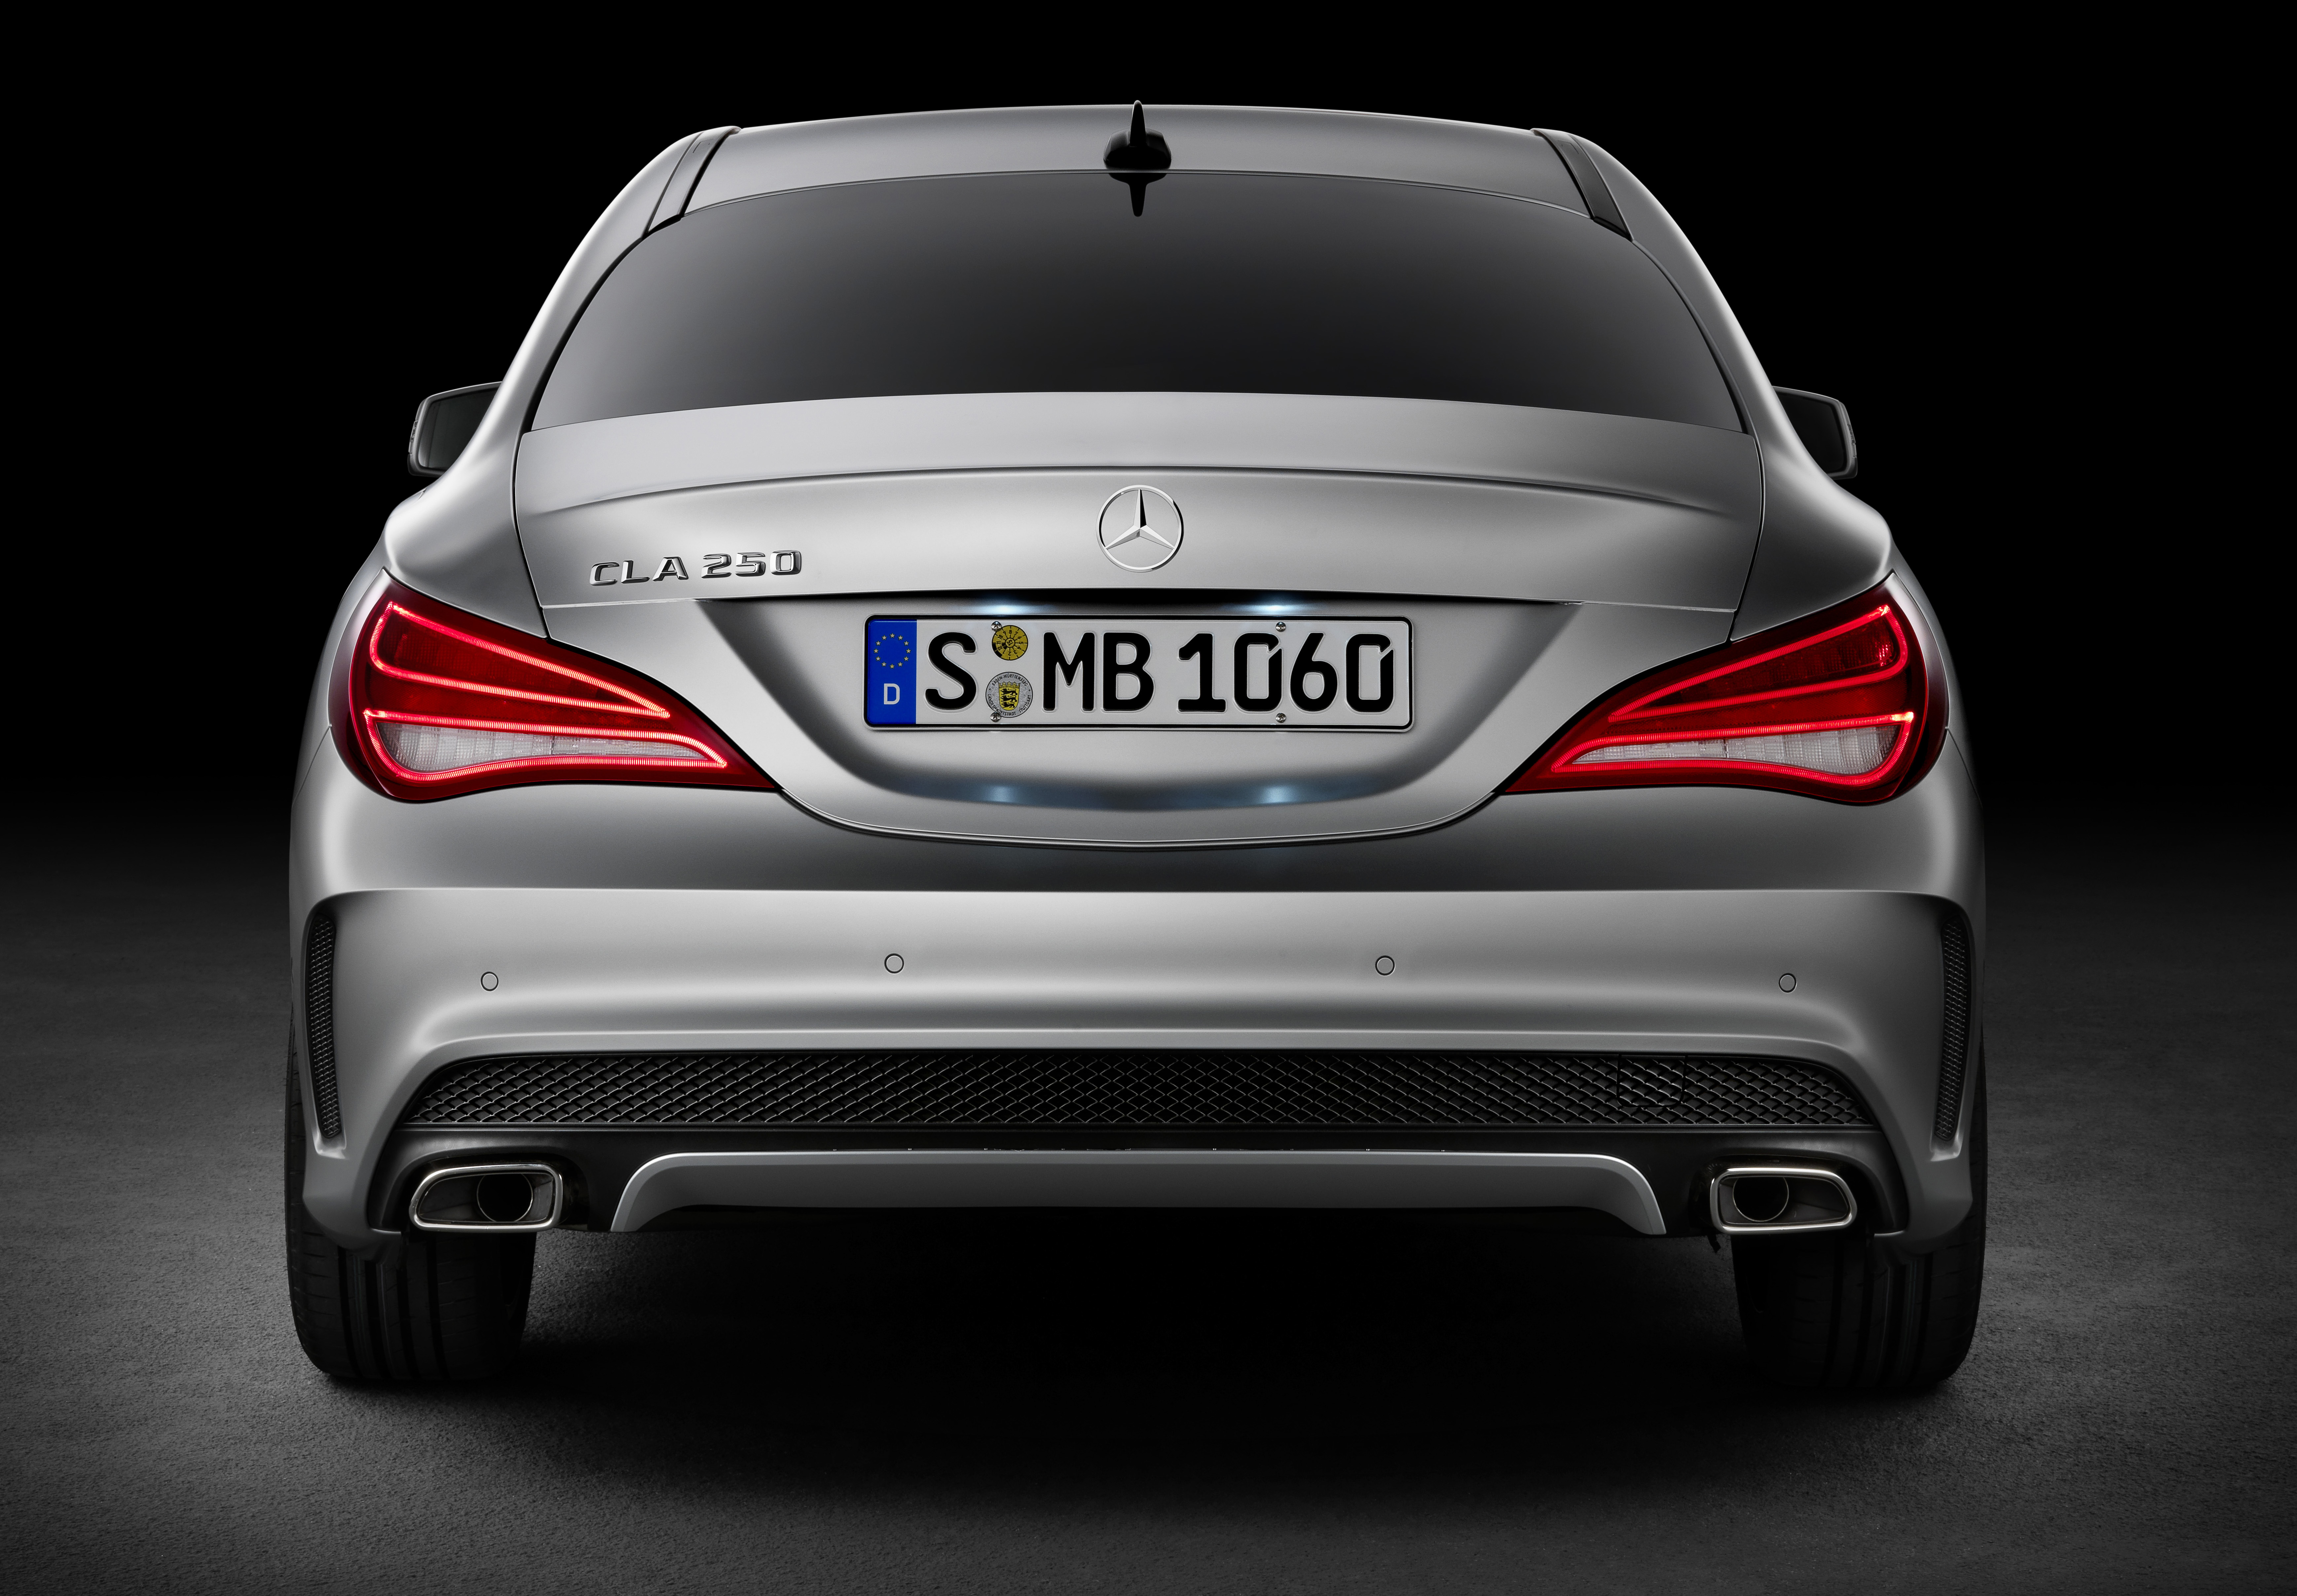 New MercedesBenz CLAClass makes its debut Image 149624